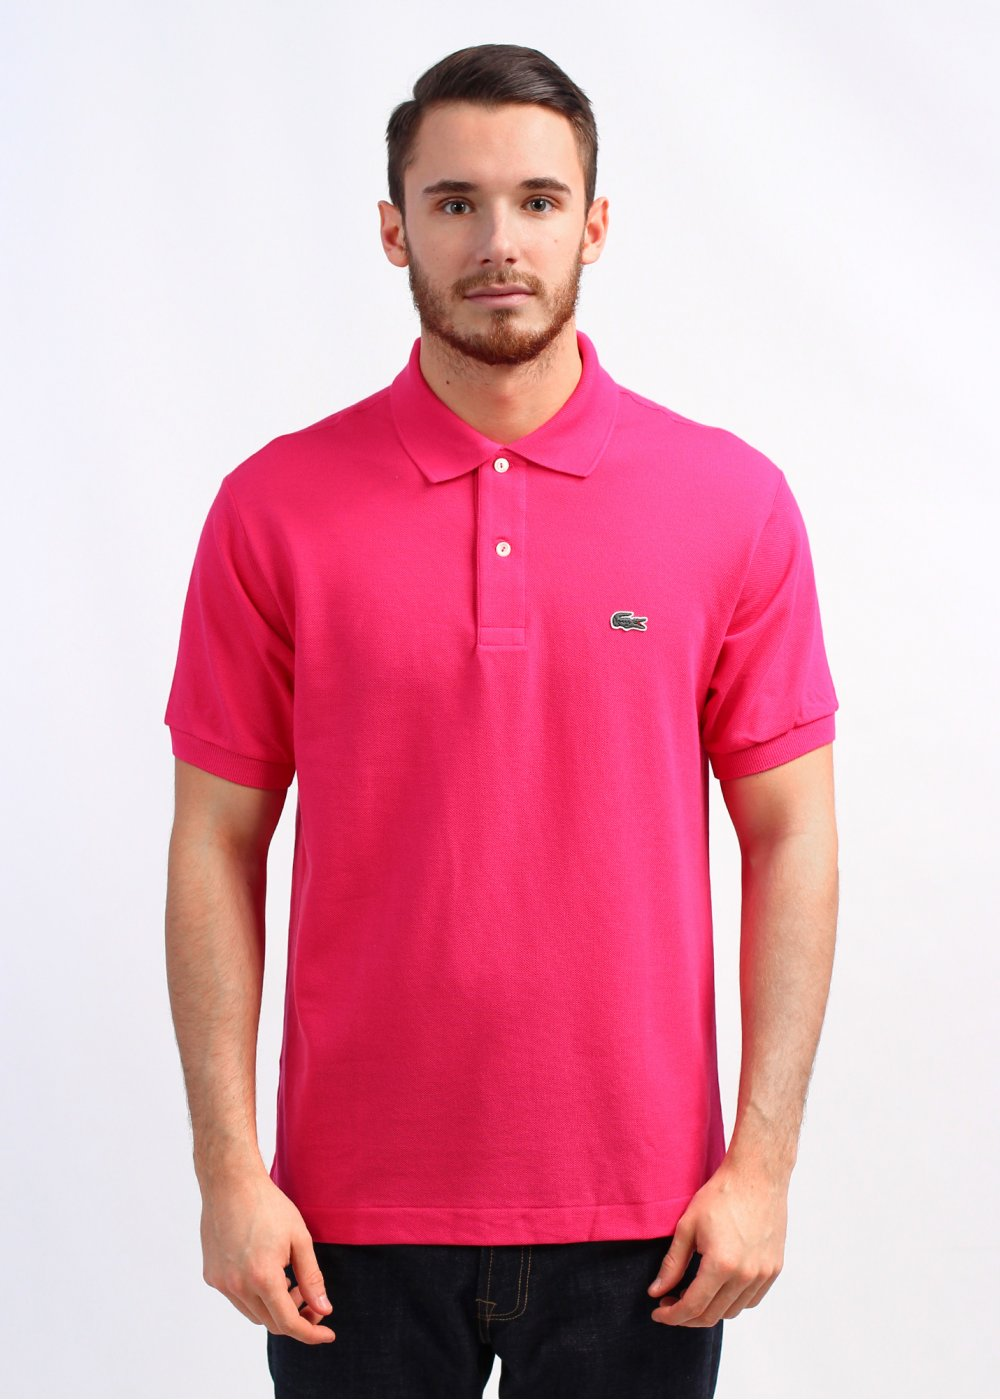 Lacoste Best Polo Shirt - Bright Pink c205005ac0